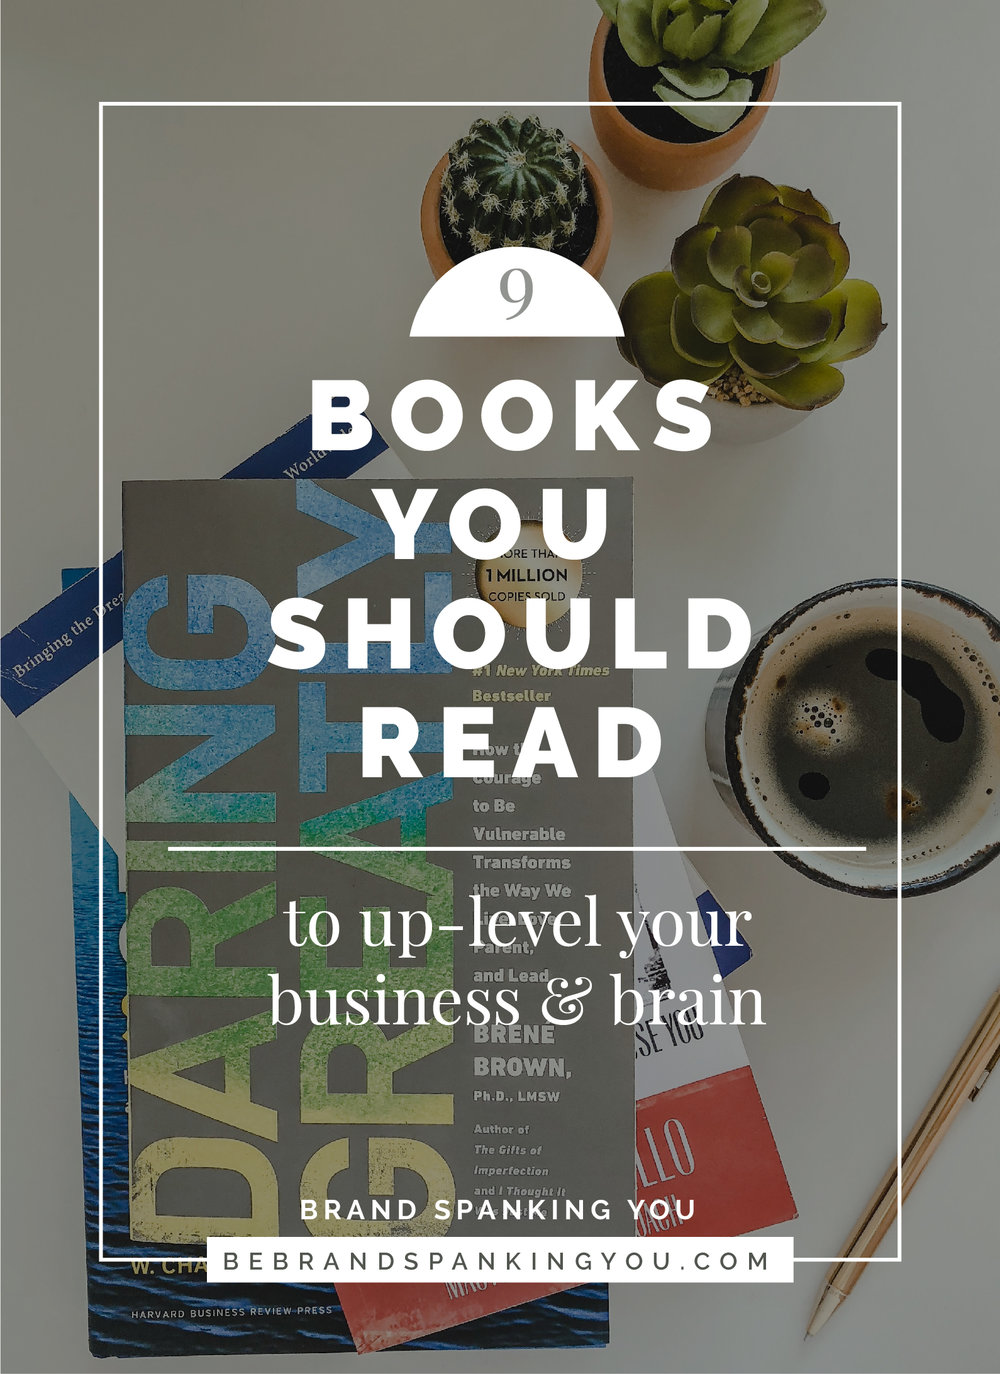 I'm a self-proclaimed book nerd, and I especially nerd out over business, self-help and personal growth books. I feel like book recommendations are the things those in my inner circle come to me for over and over again, so I thought I'd round up a few of my favorites for creative entrepreneurs here.